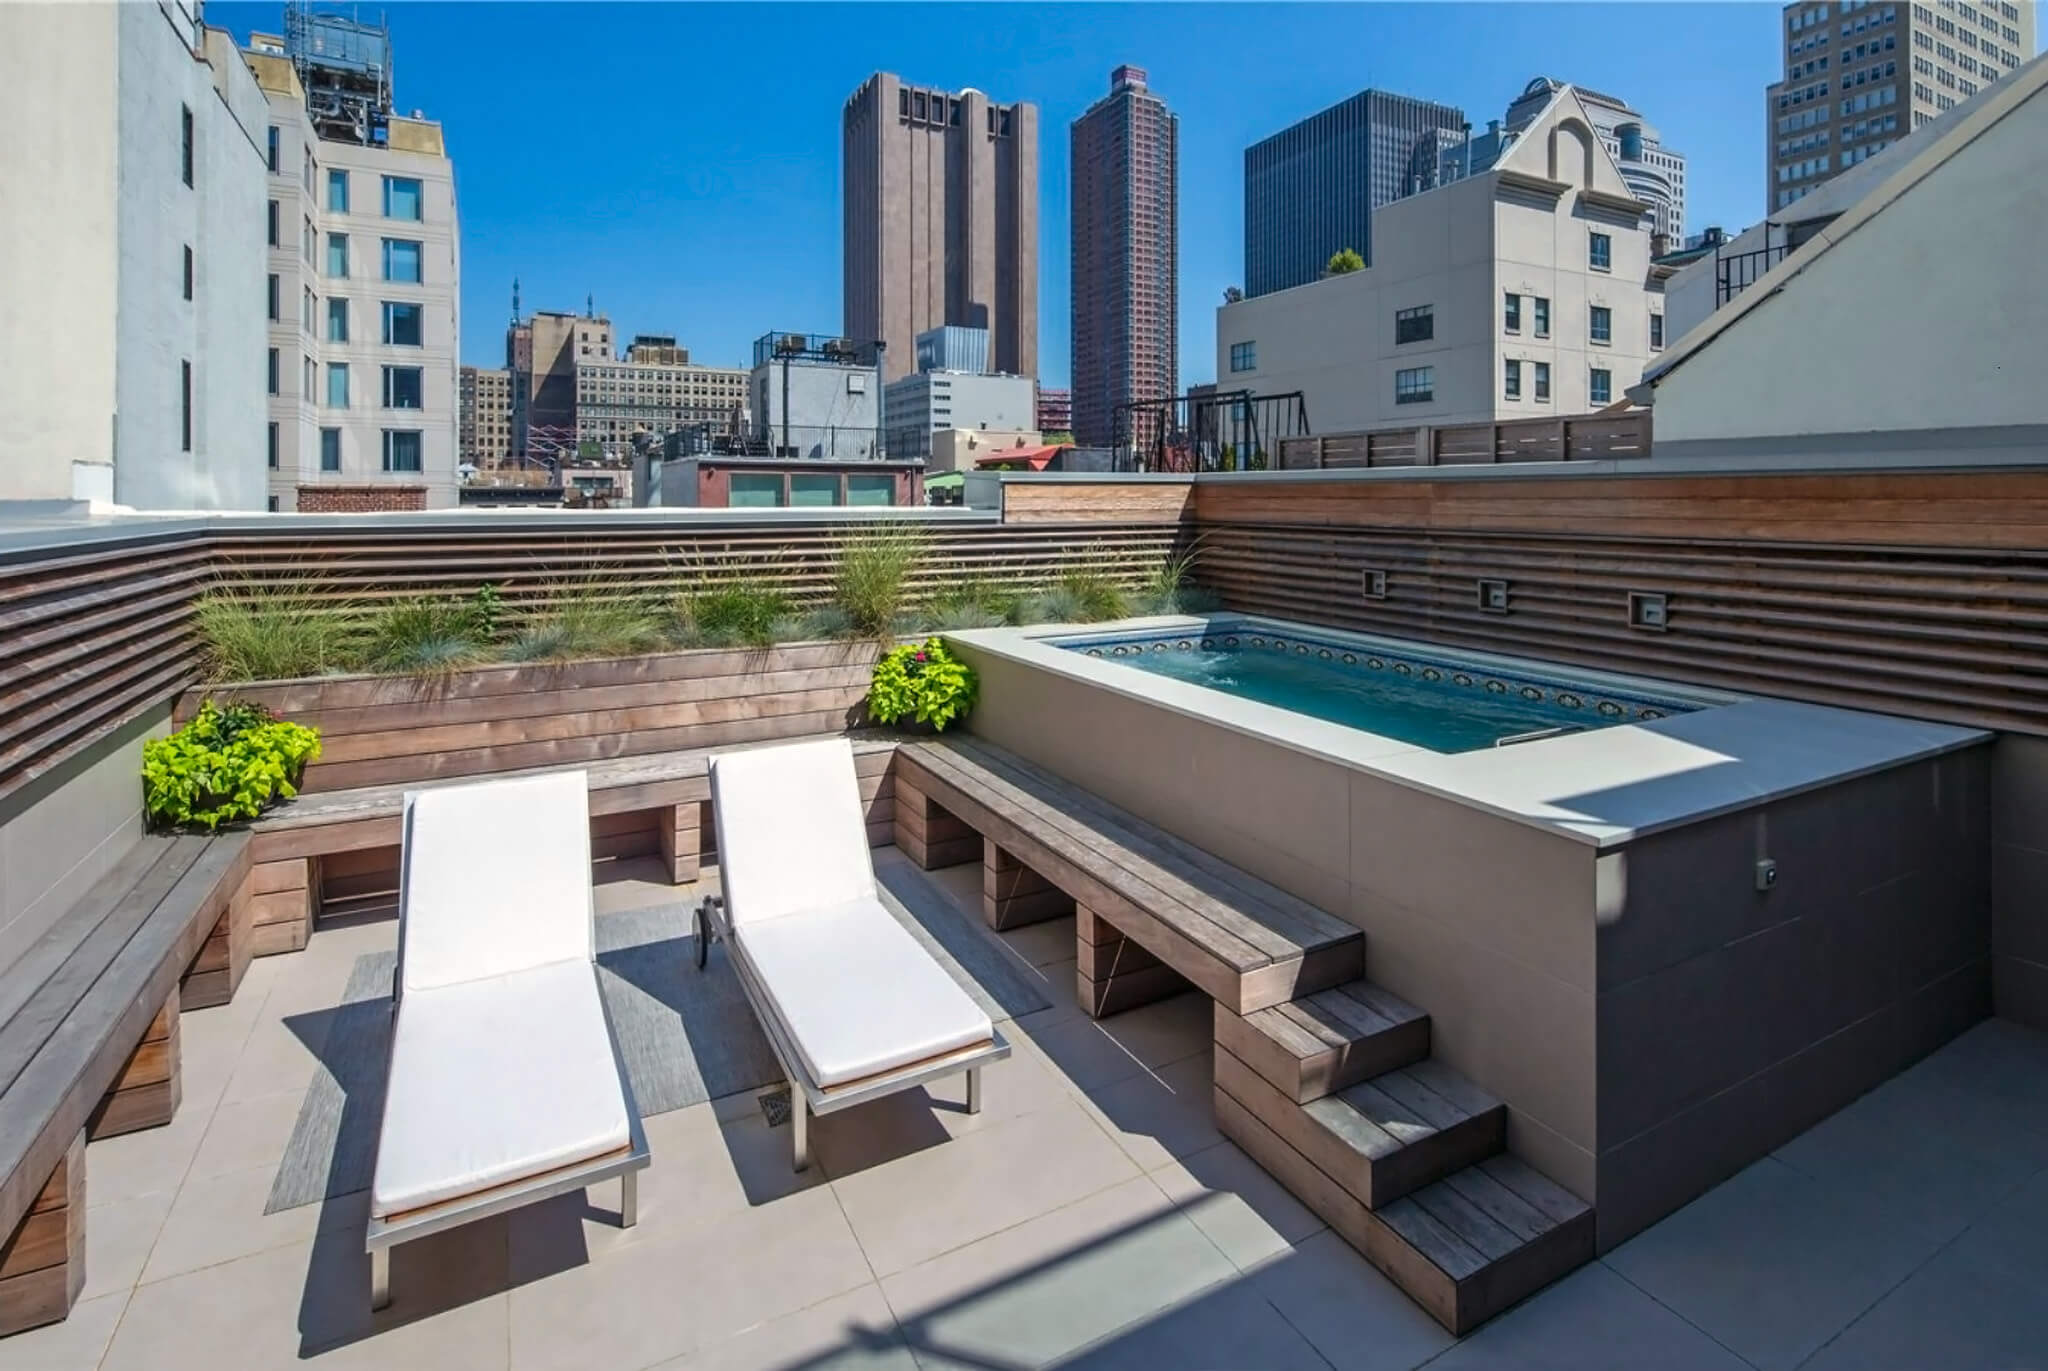 a rooftop Endless Pool in New York City's TriBeCa neighborhood